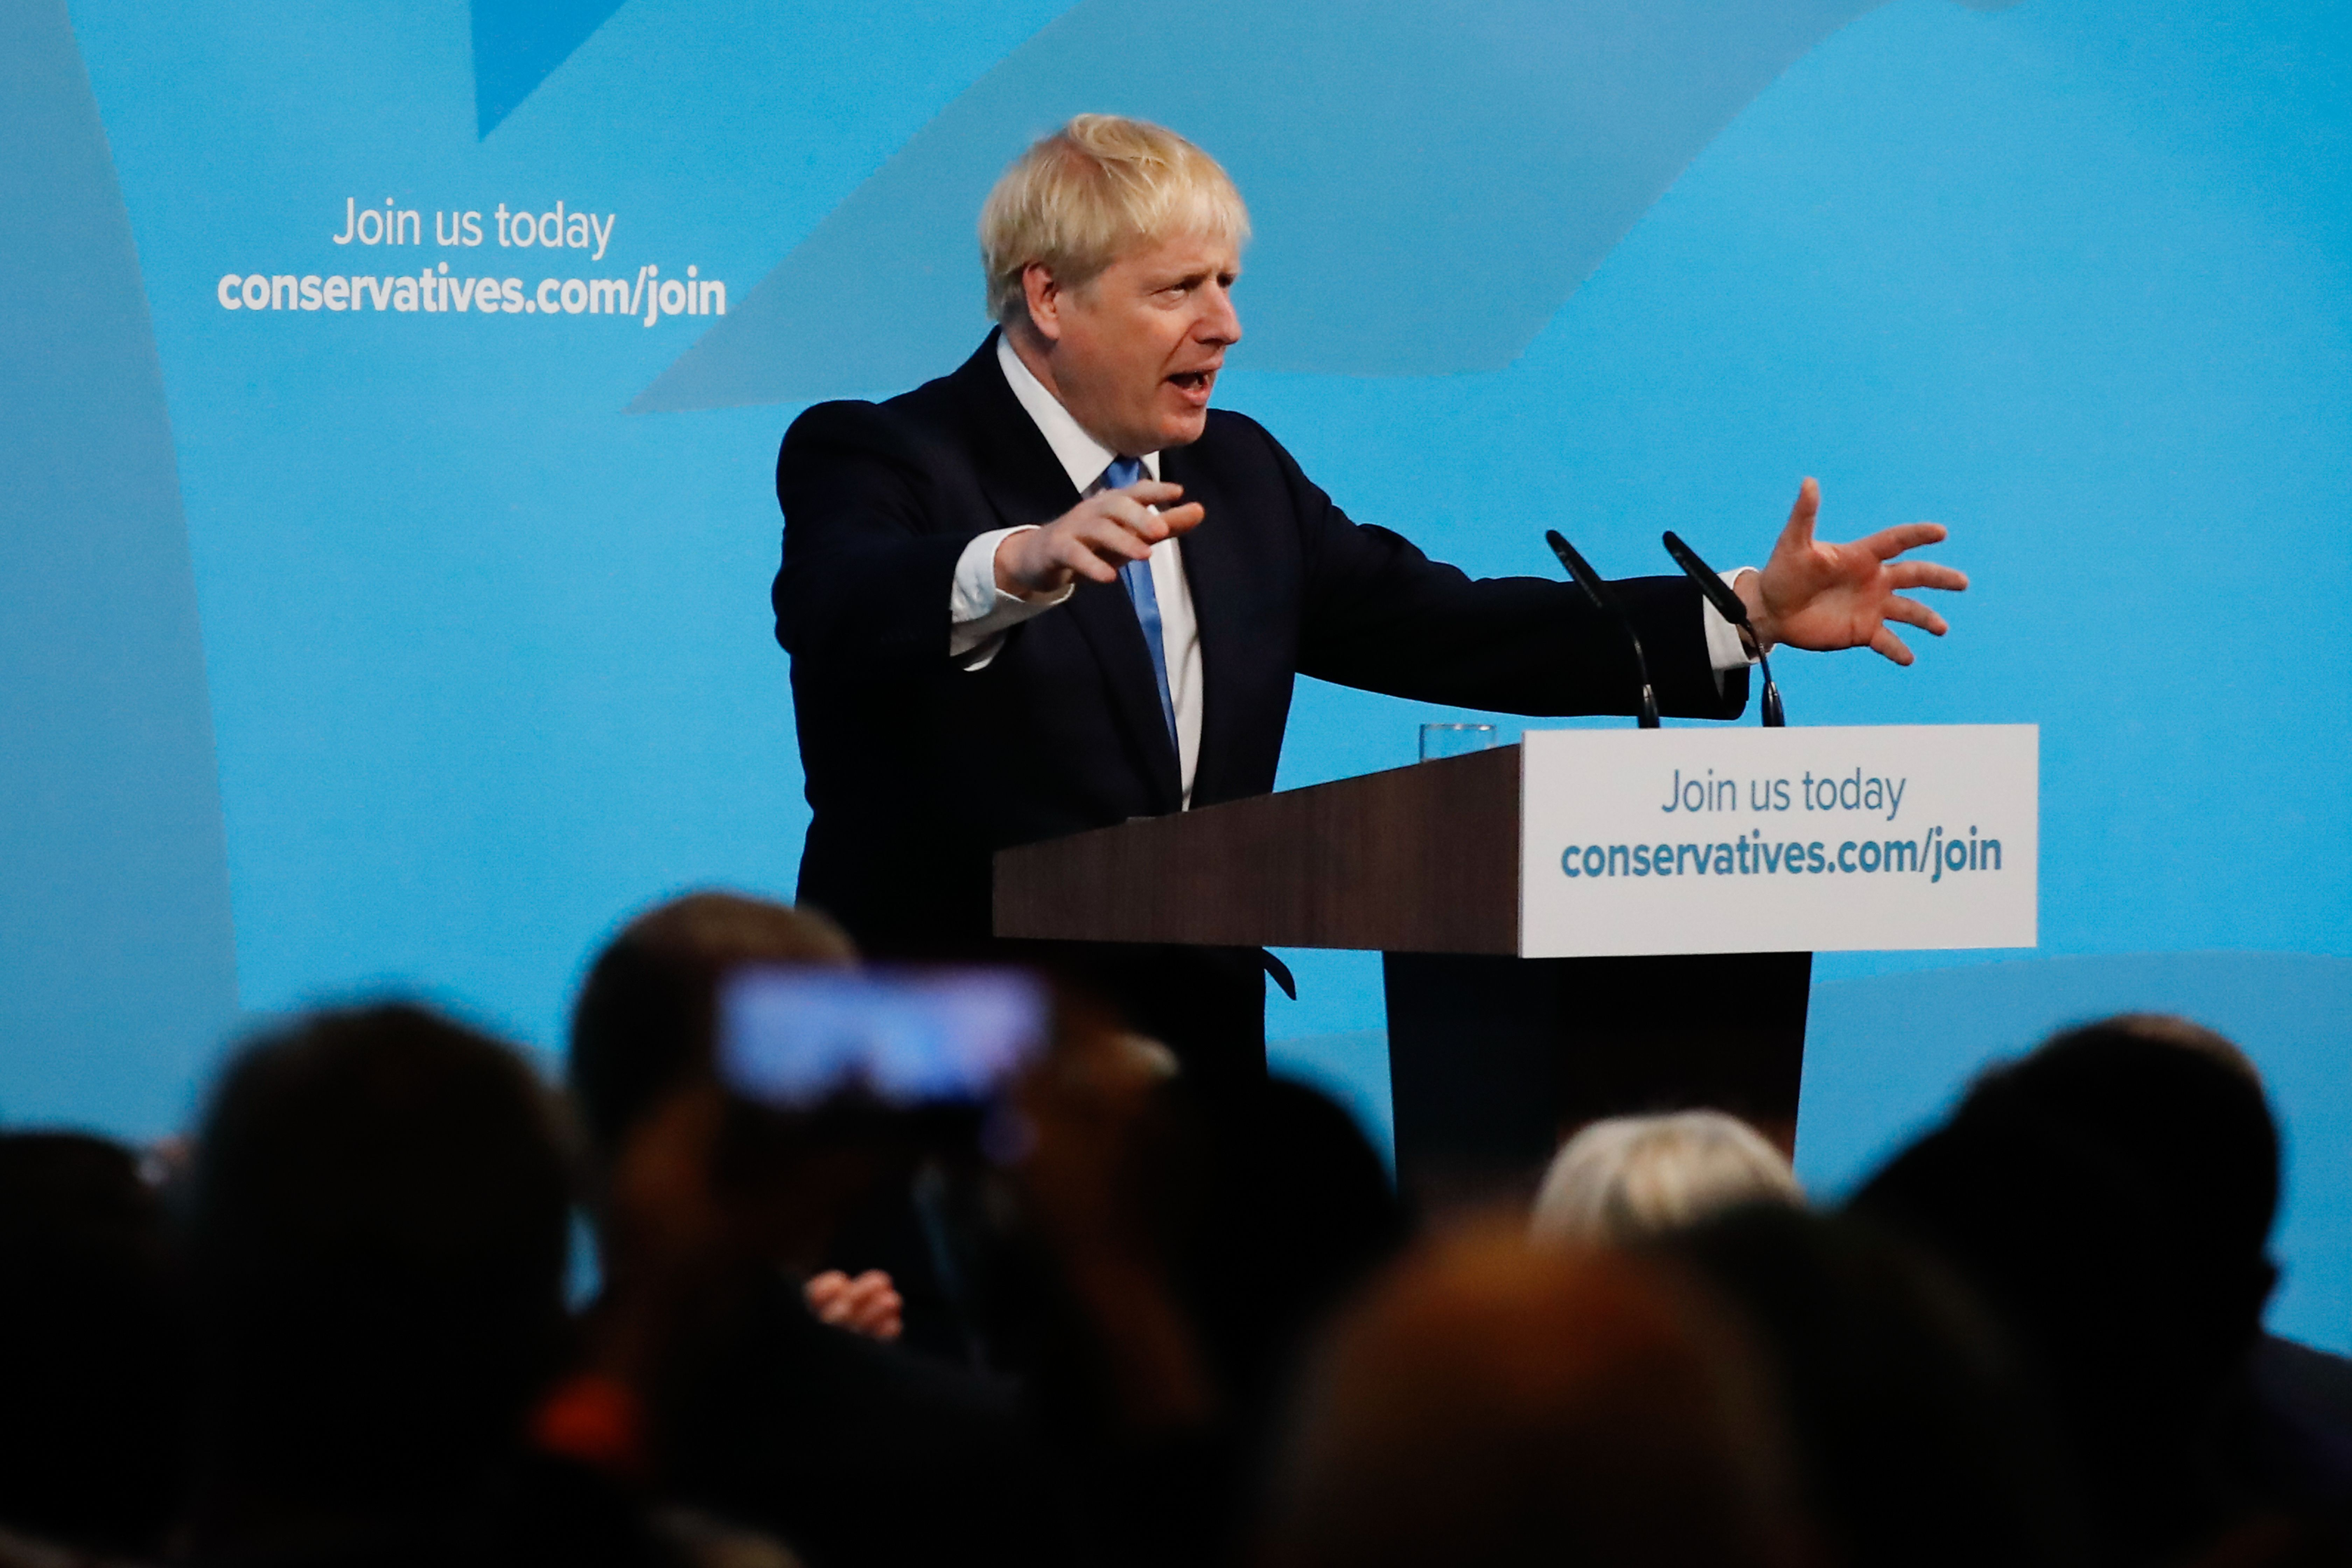 New Conservative Party leader and incoming prime minister Boris Johnson gives a speech at an event to announce the winner of the Conservative Party leadership contest in central London on July 23, 2019. (Photo by Tolga AKMEN / AFP)        (Photo credit should read TOLGA AKMEN/AFP/Getty Images)